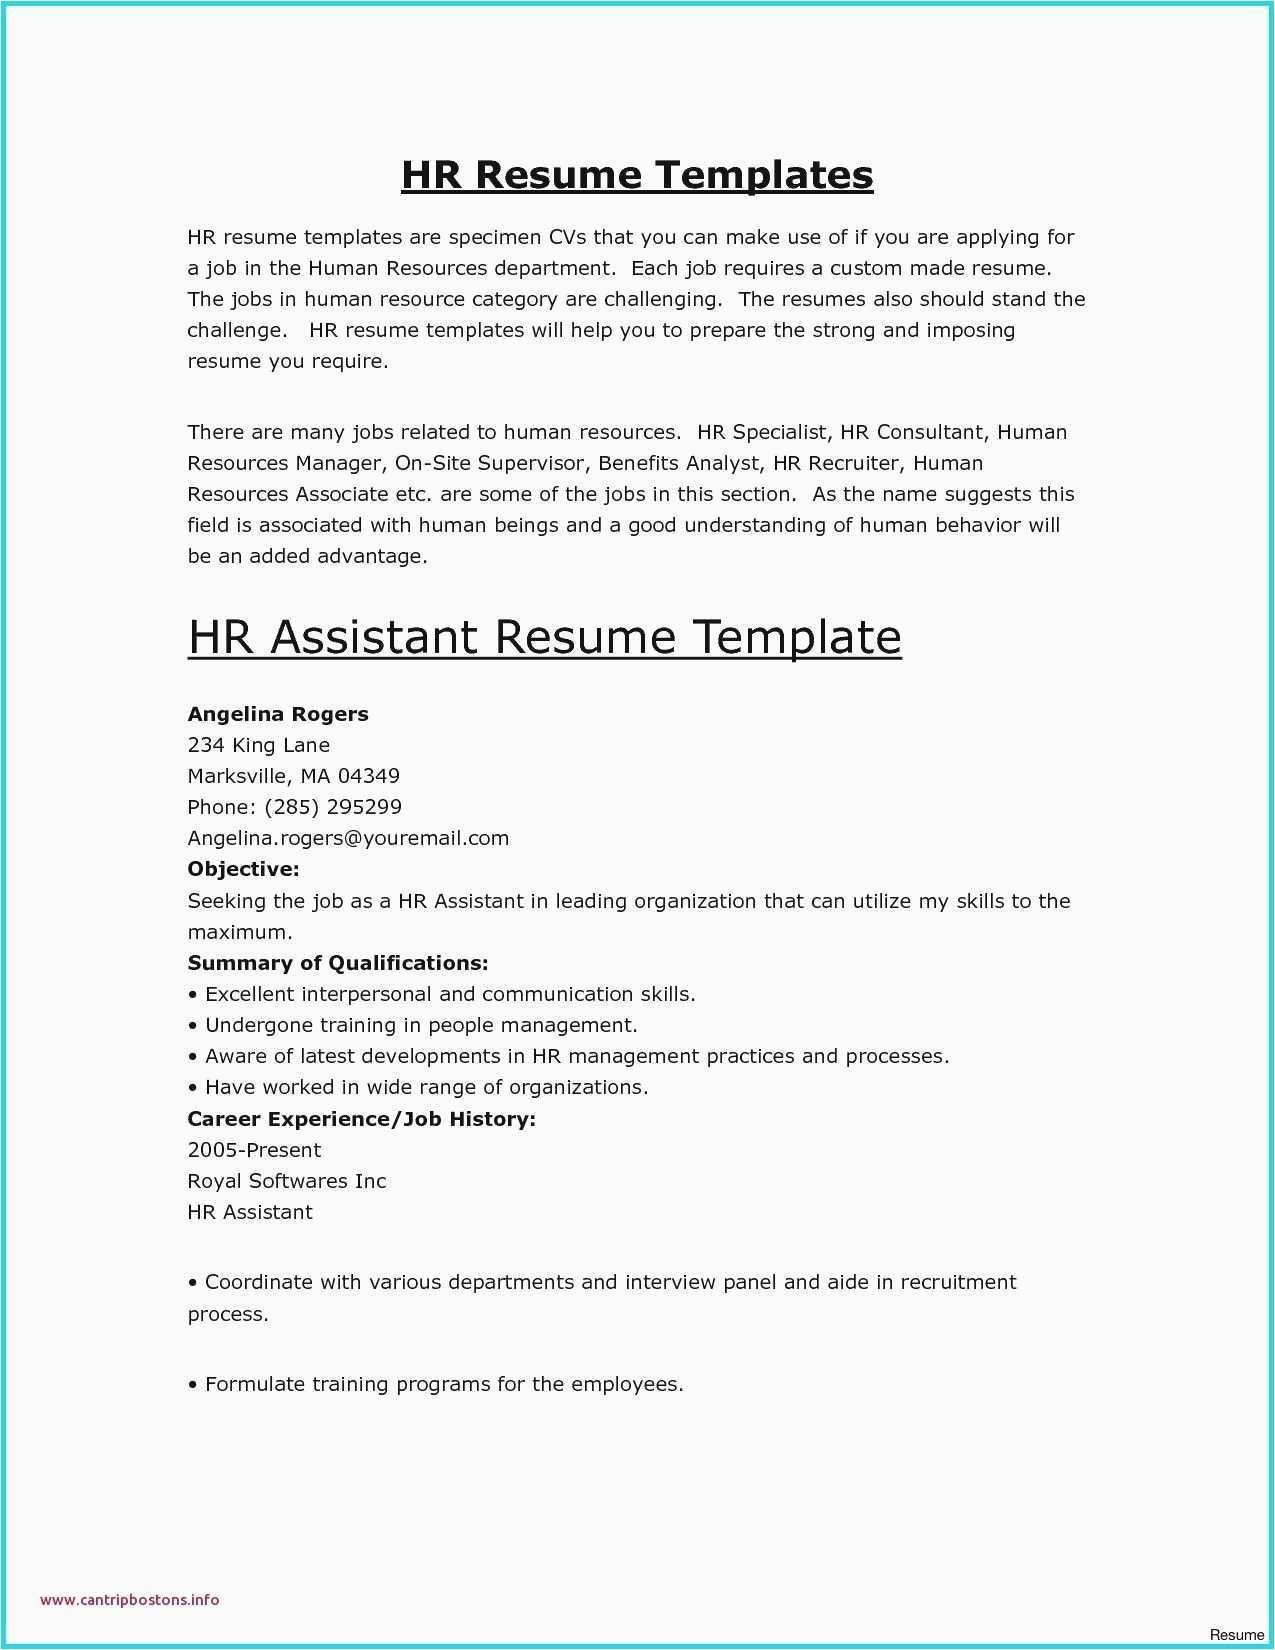 Basic Sample Resume Template New 27 Basic Resume Builder Model